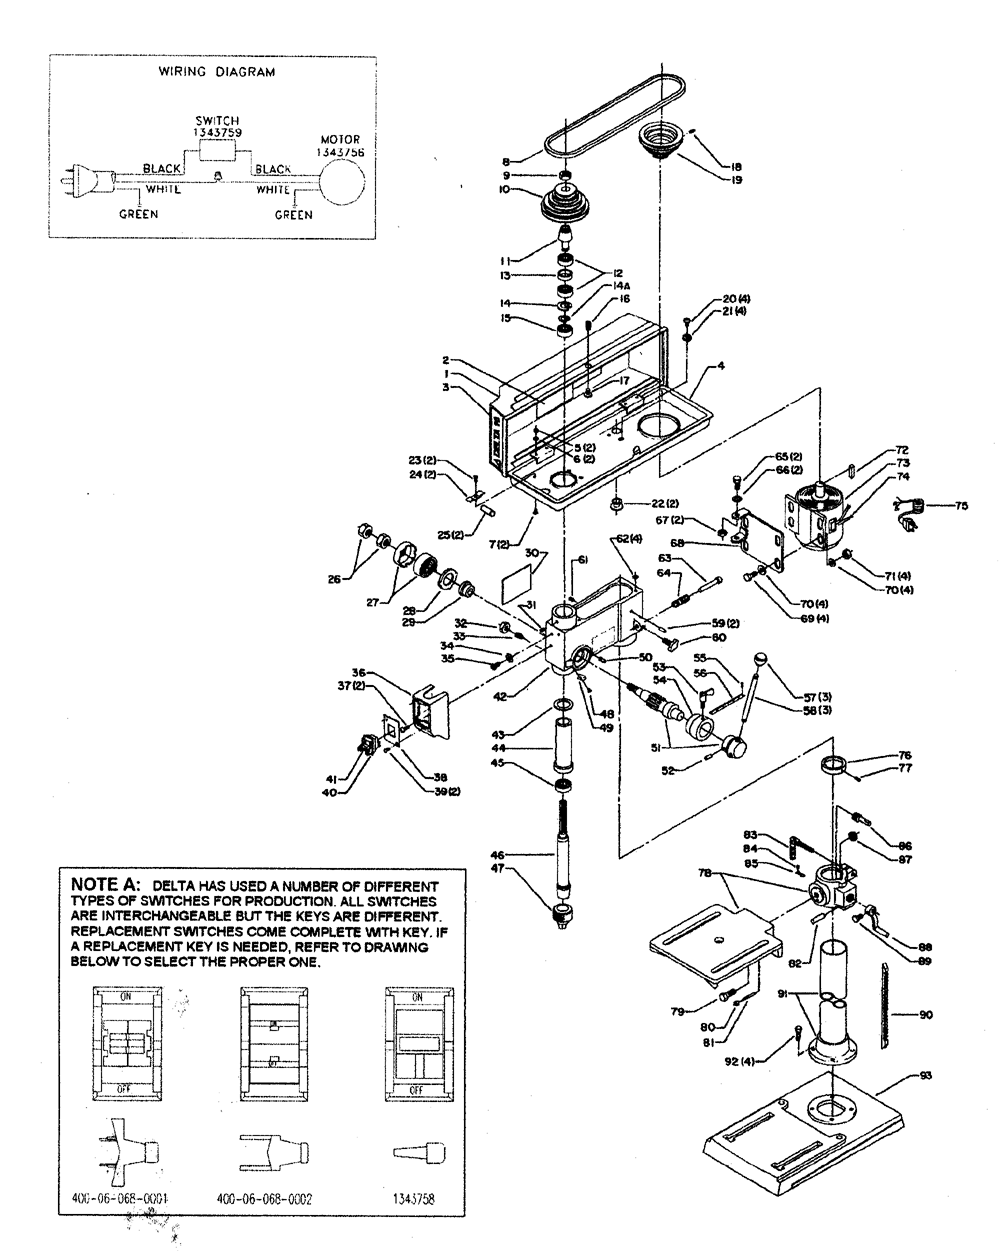 medium resolution of craftsman drill dayton drill press manual pdf download about dayton press manual download 64mb complete heavy duty catalog 140 easy ordering convenient